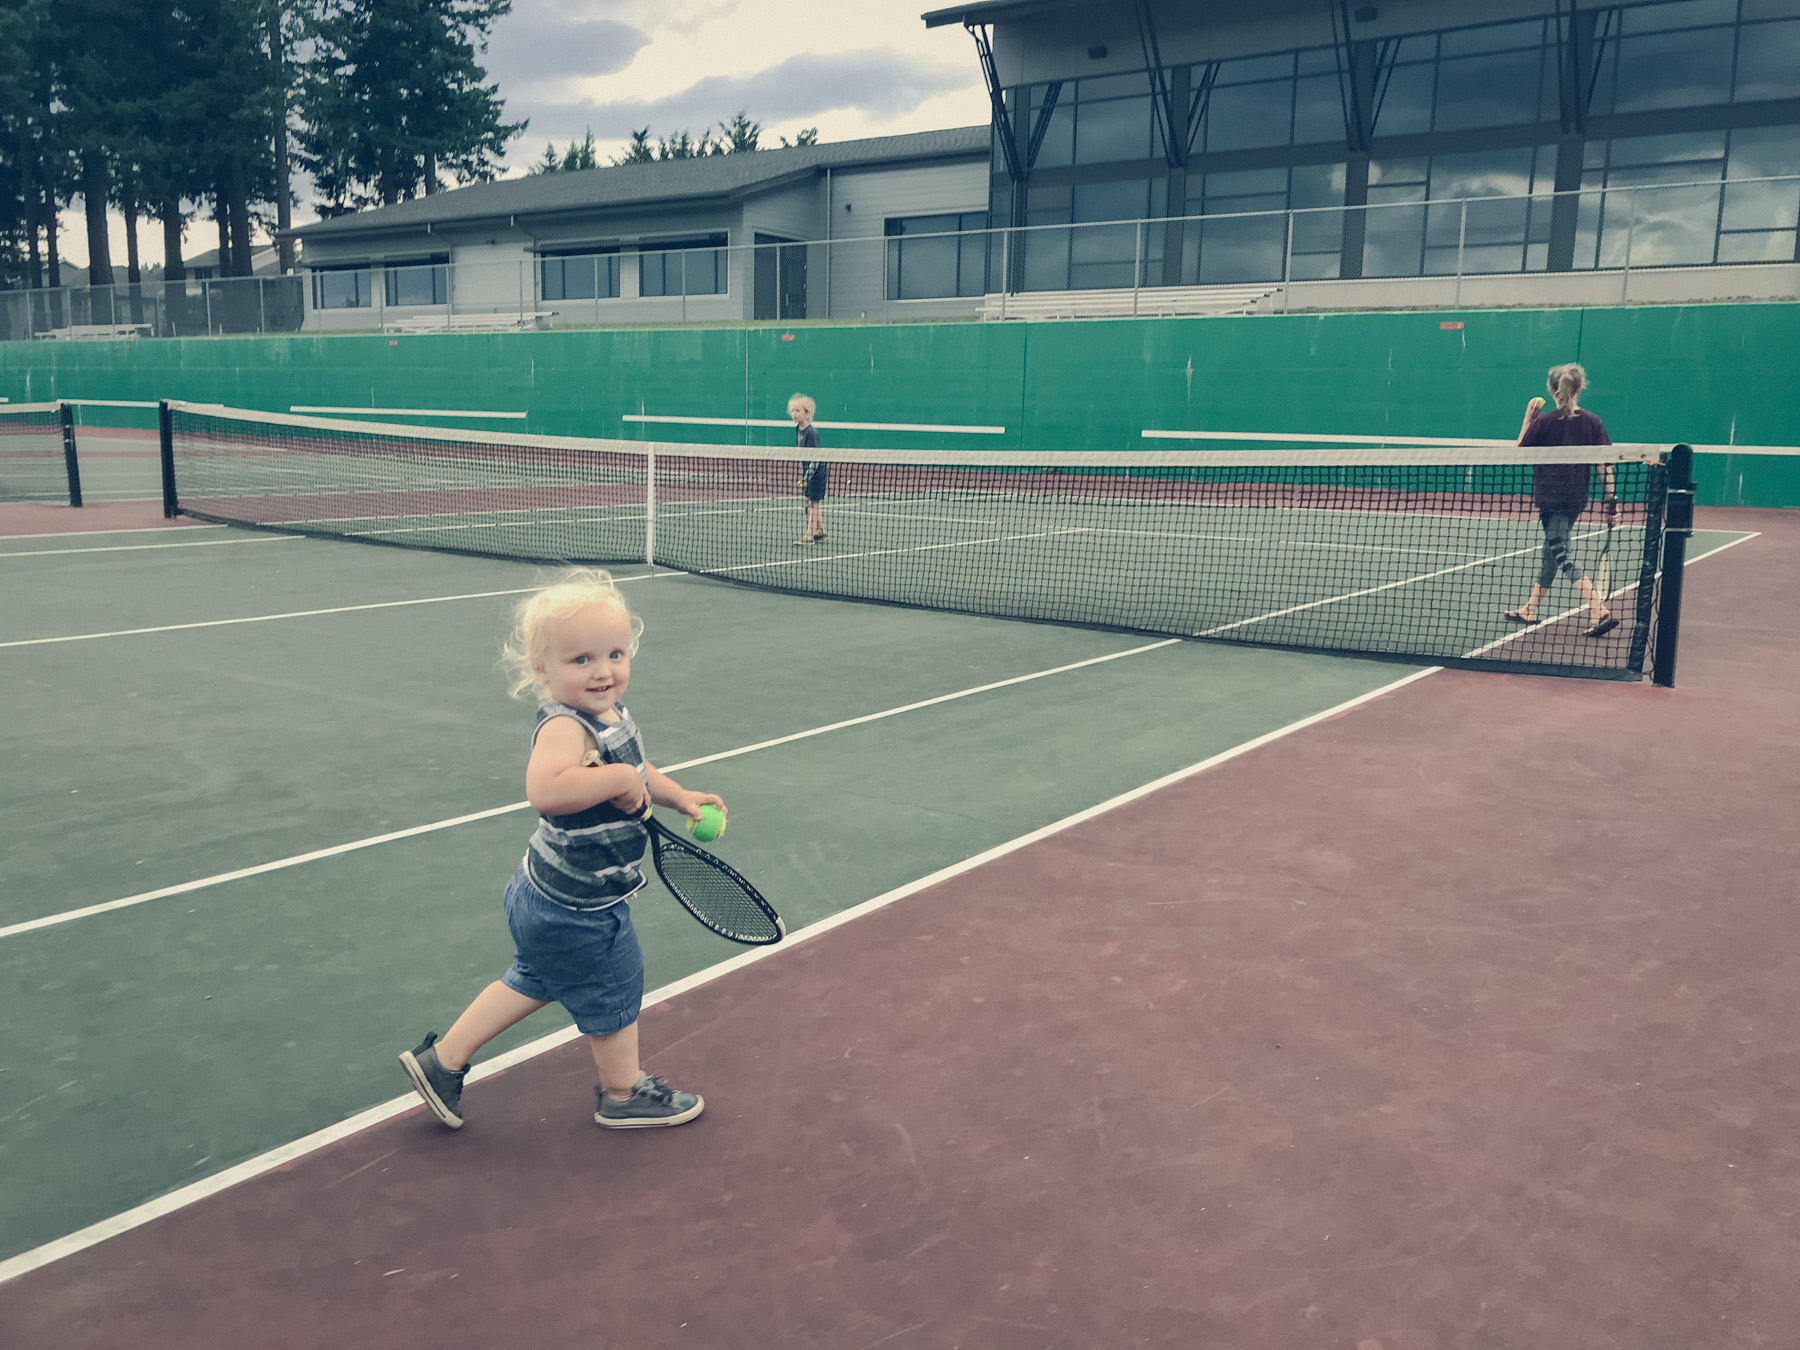 Children playing tennis and getting annihilated by their father, who is off-camera taking the photo.